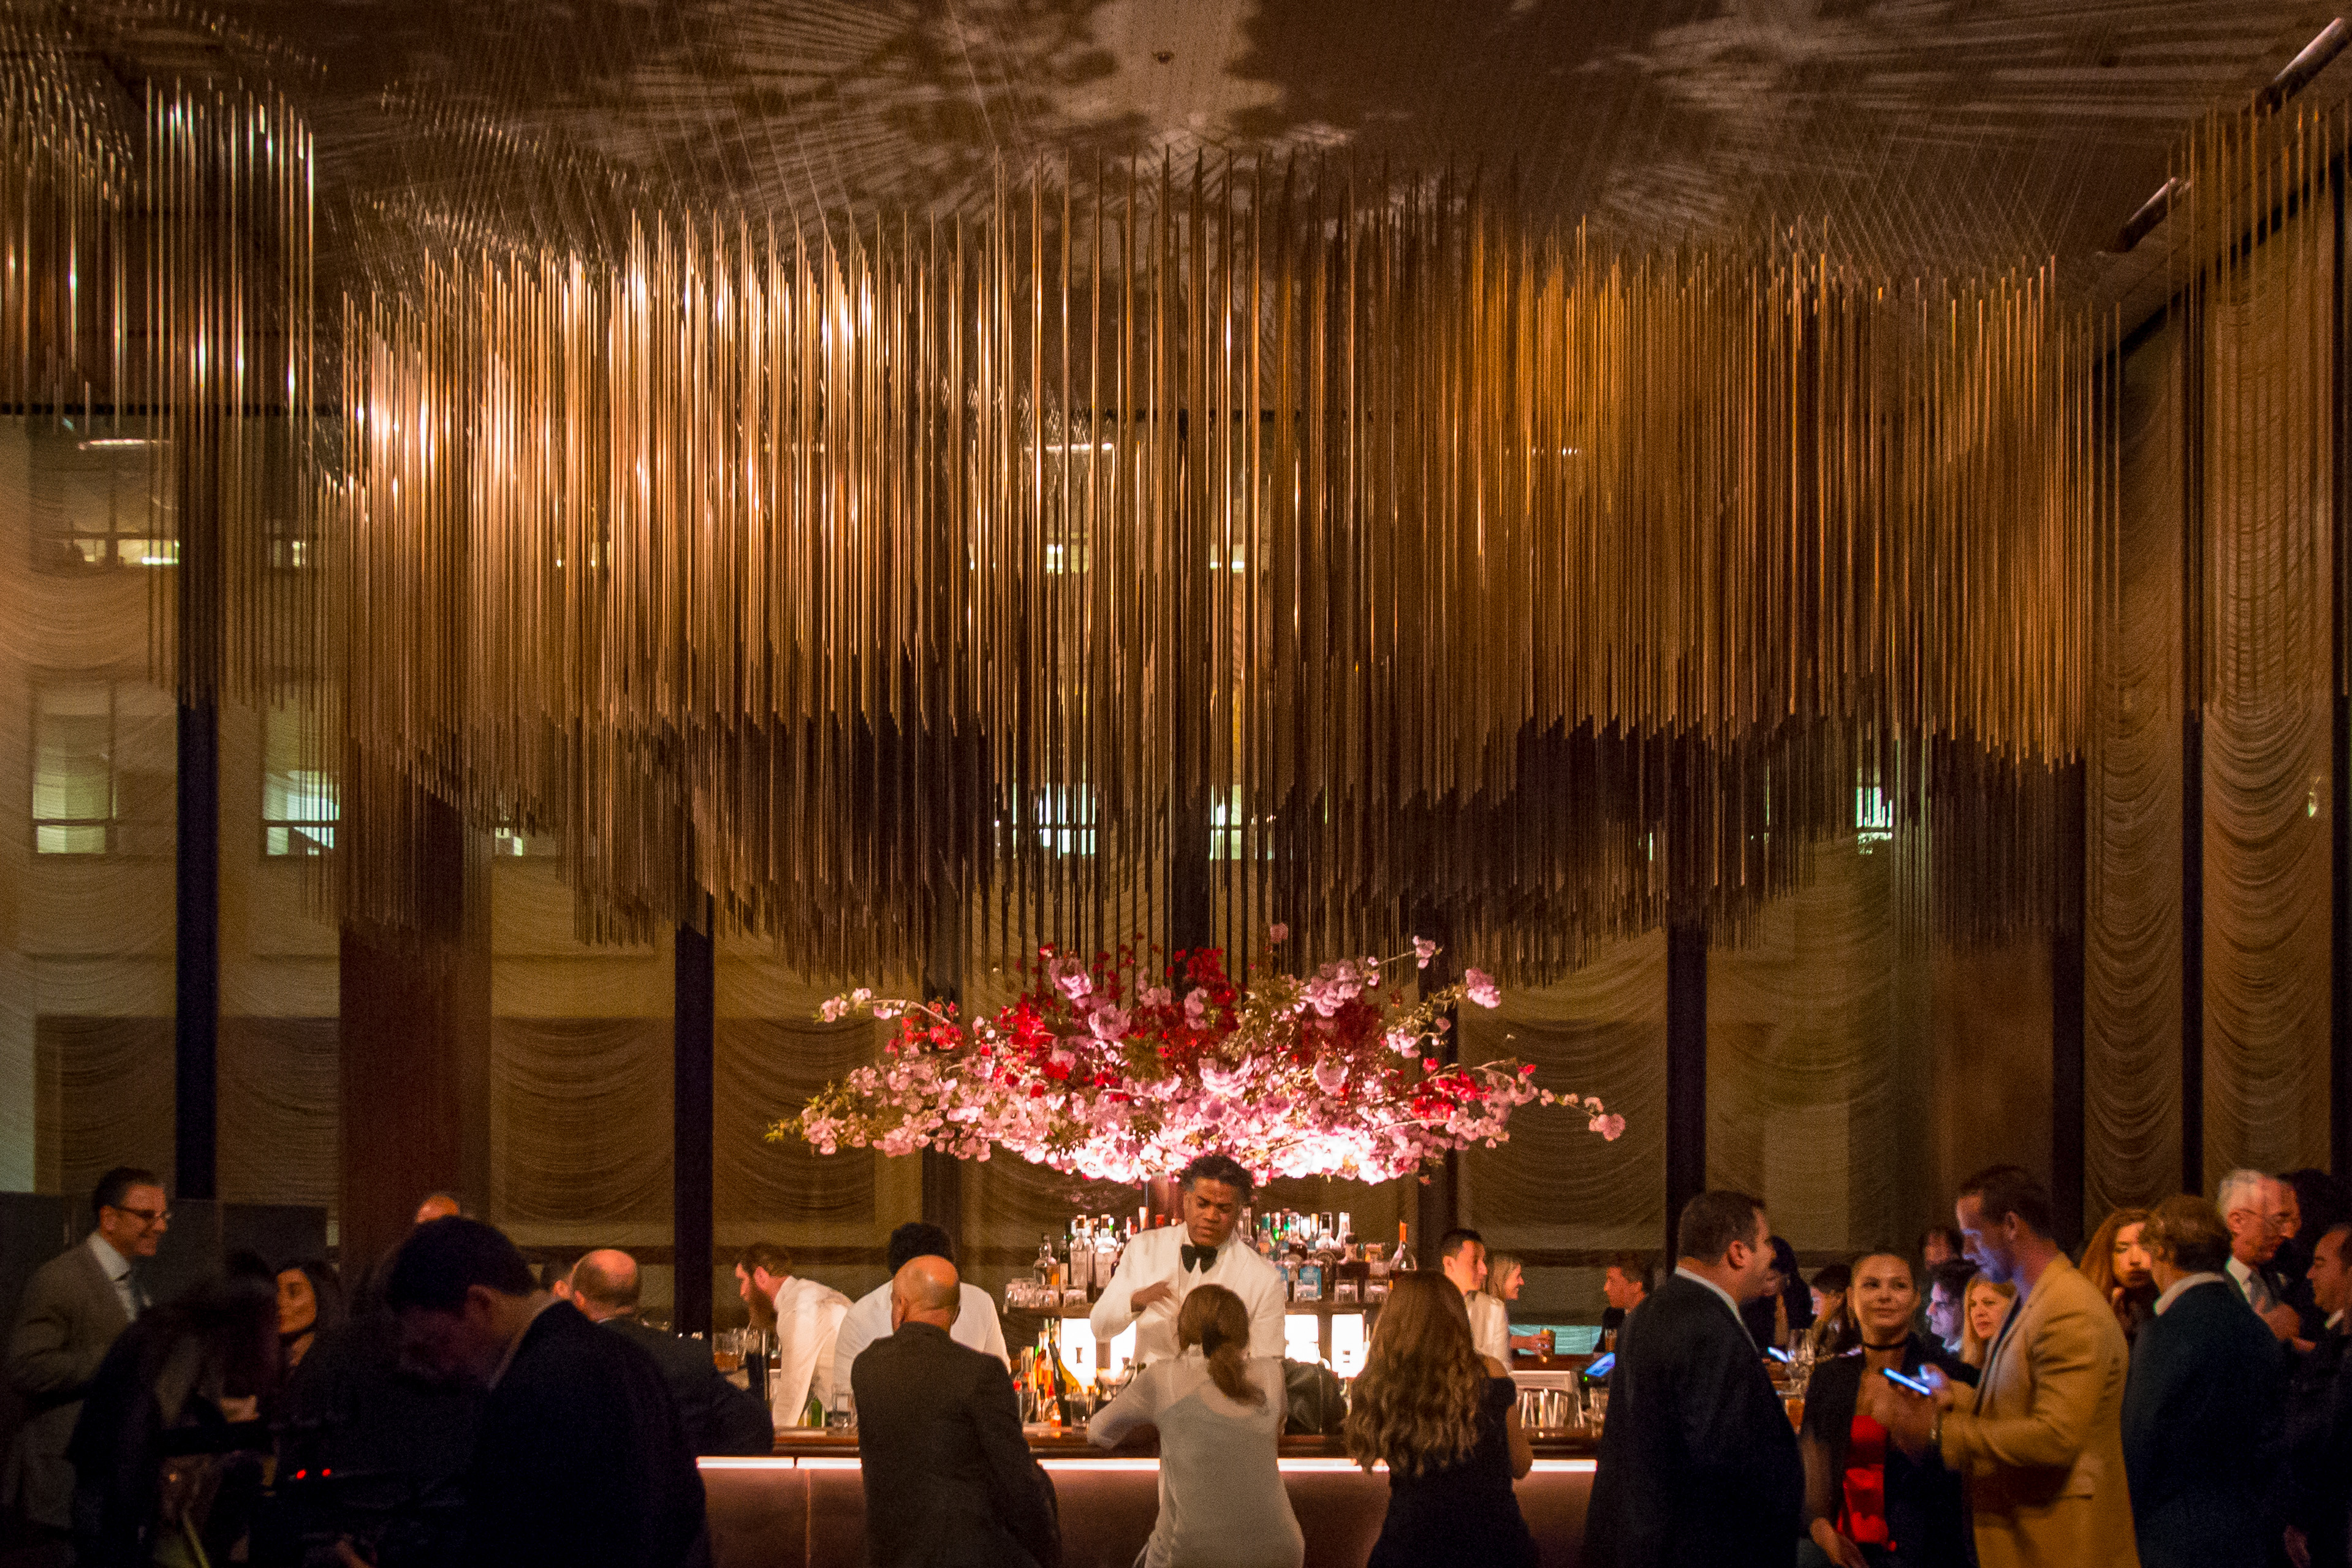 A man in a white tuxedo stands behind the bar at the Grill, in front of a giant arrangement of pink and red flowers